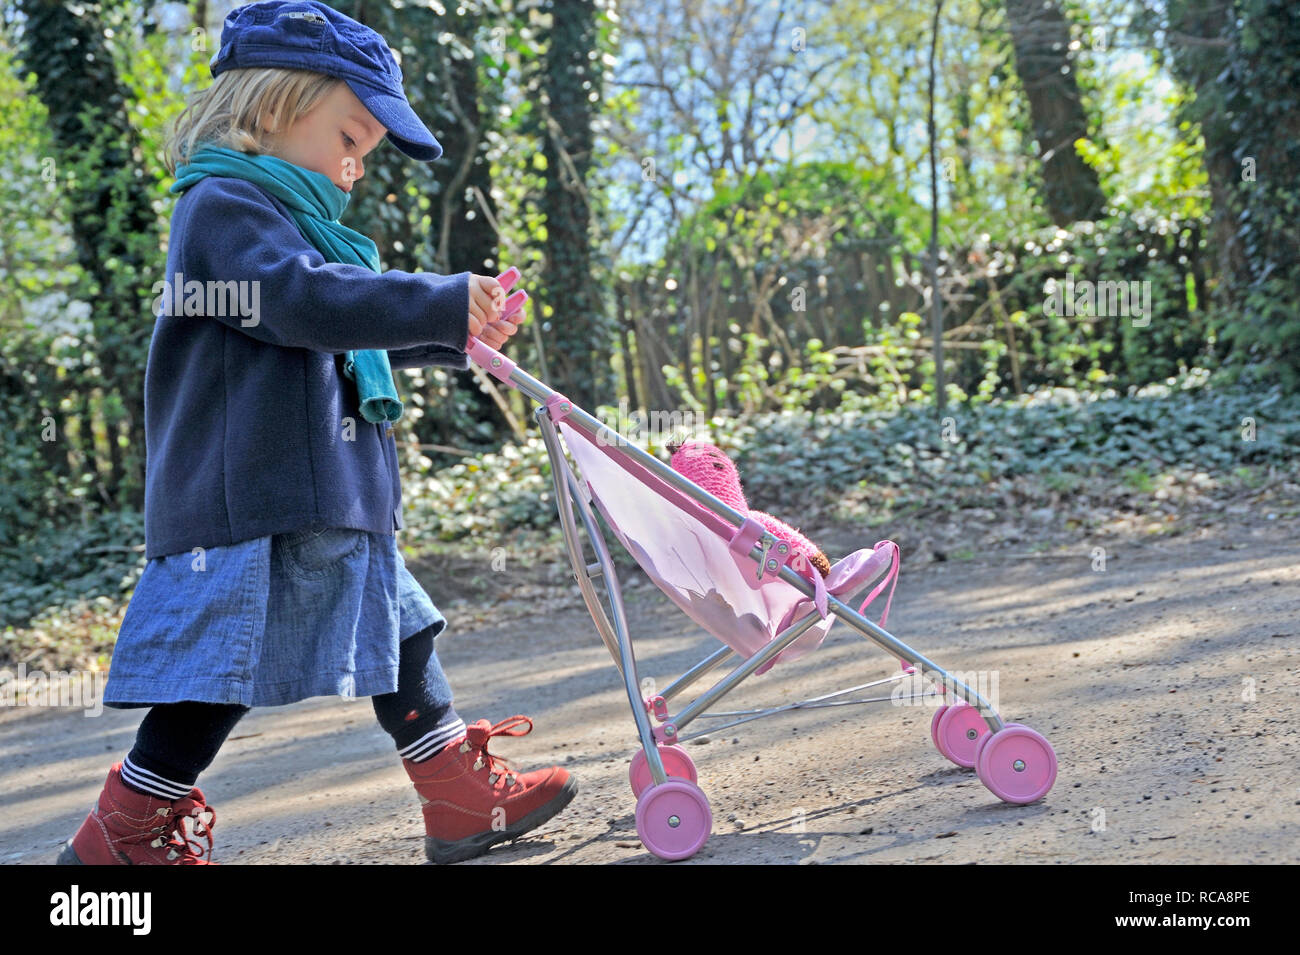 Doll Buggy Stock Photos & Doll Buggy Stock Images - Alamy